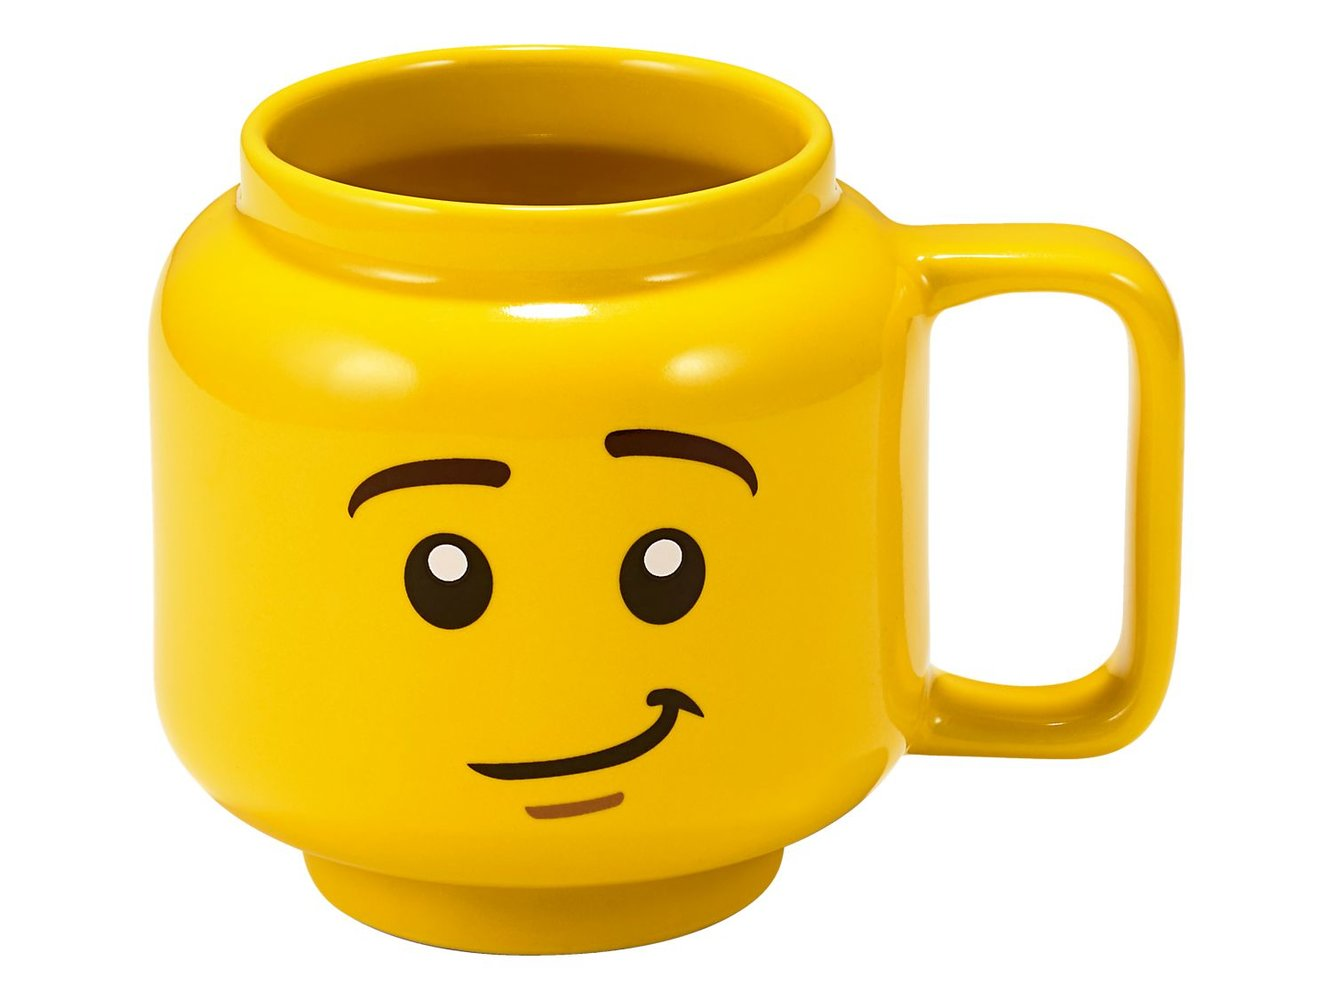 Minifigure Ceramic Mug